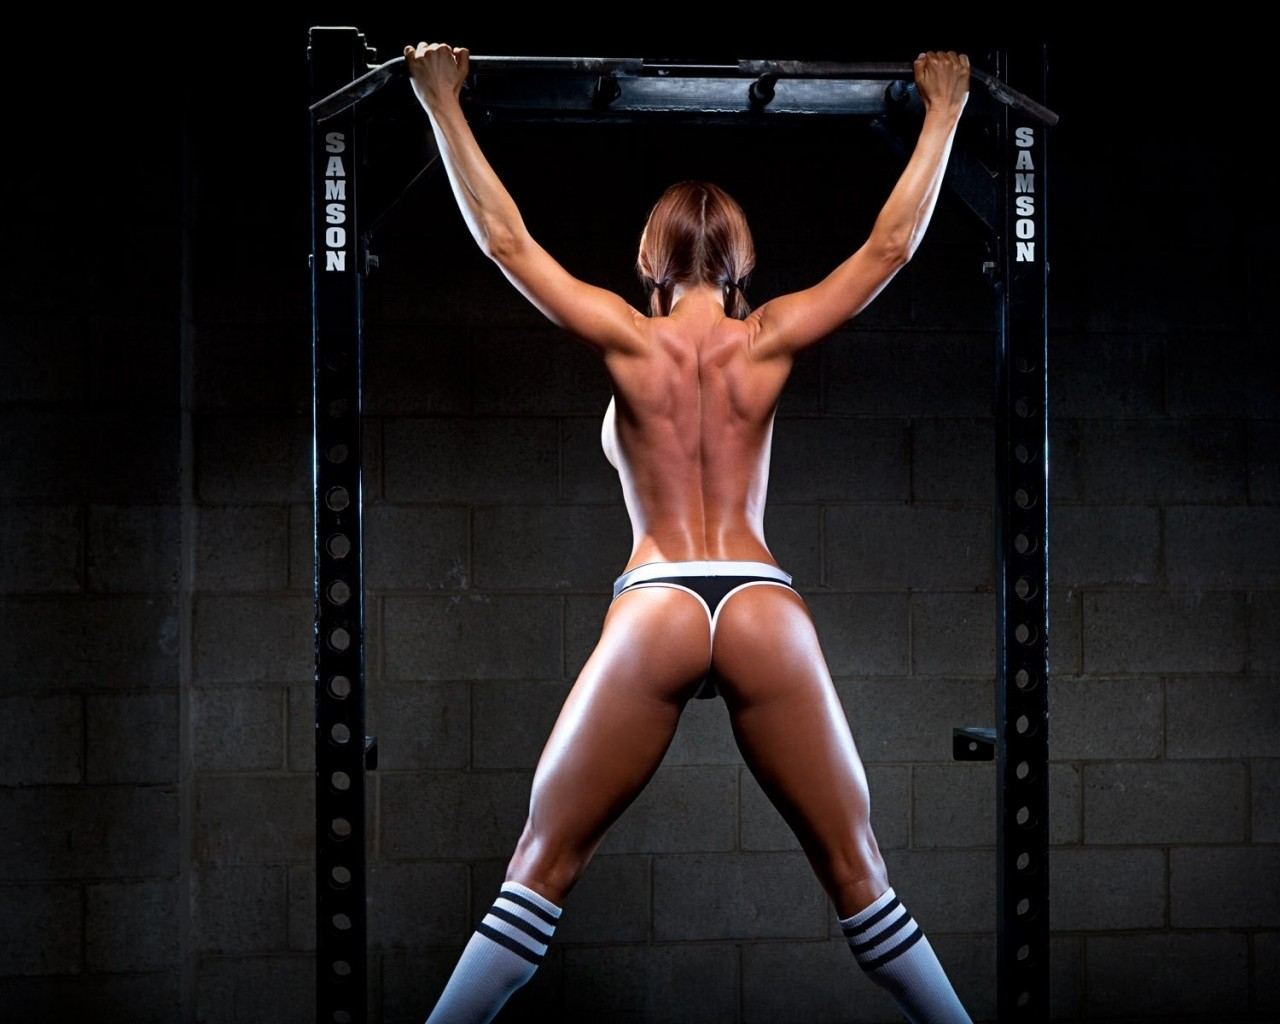 back_skinny_ass_fitness_model_working_out_model_women-342071.jpg